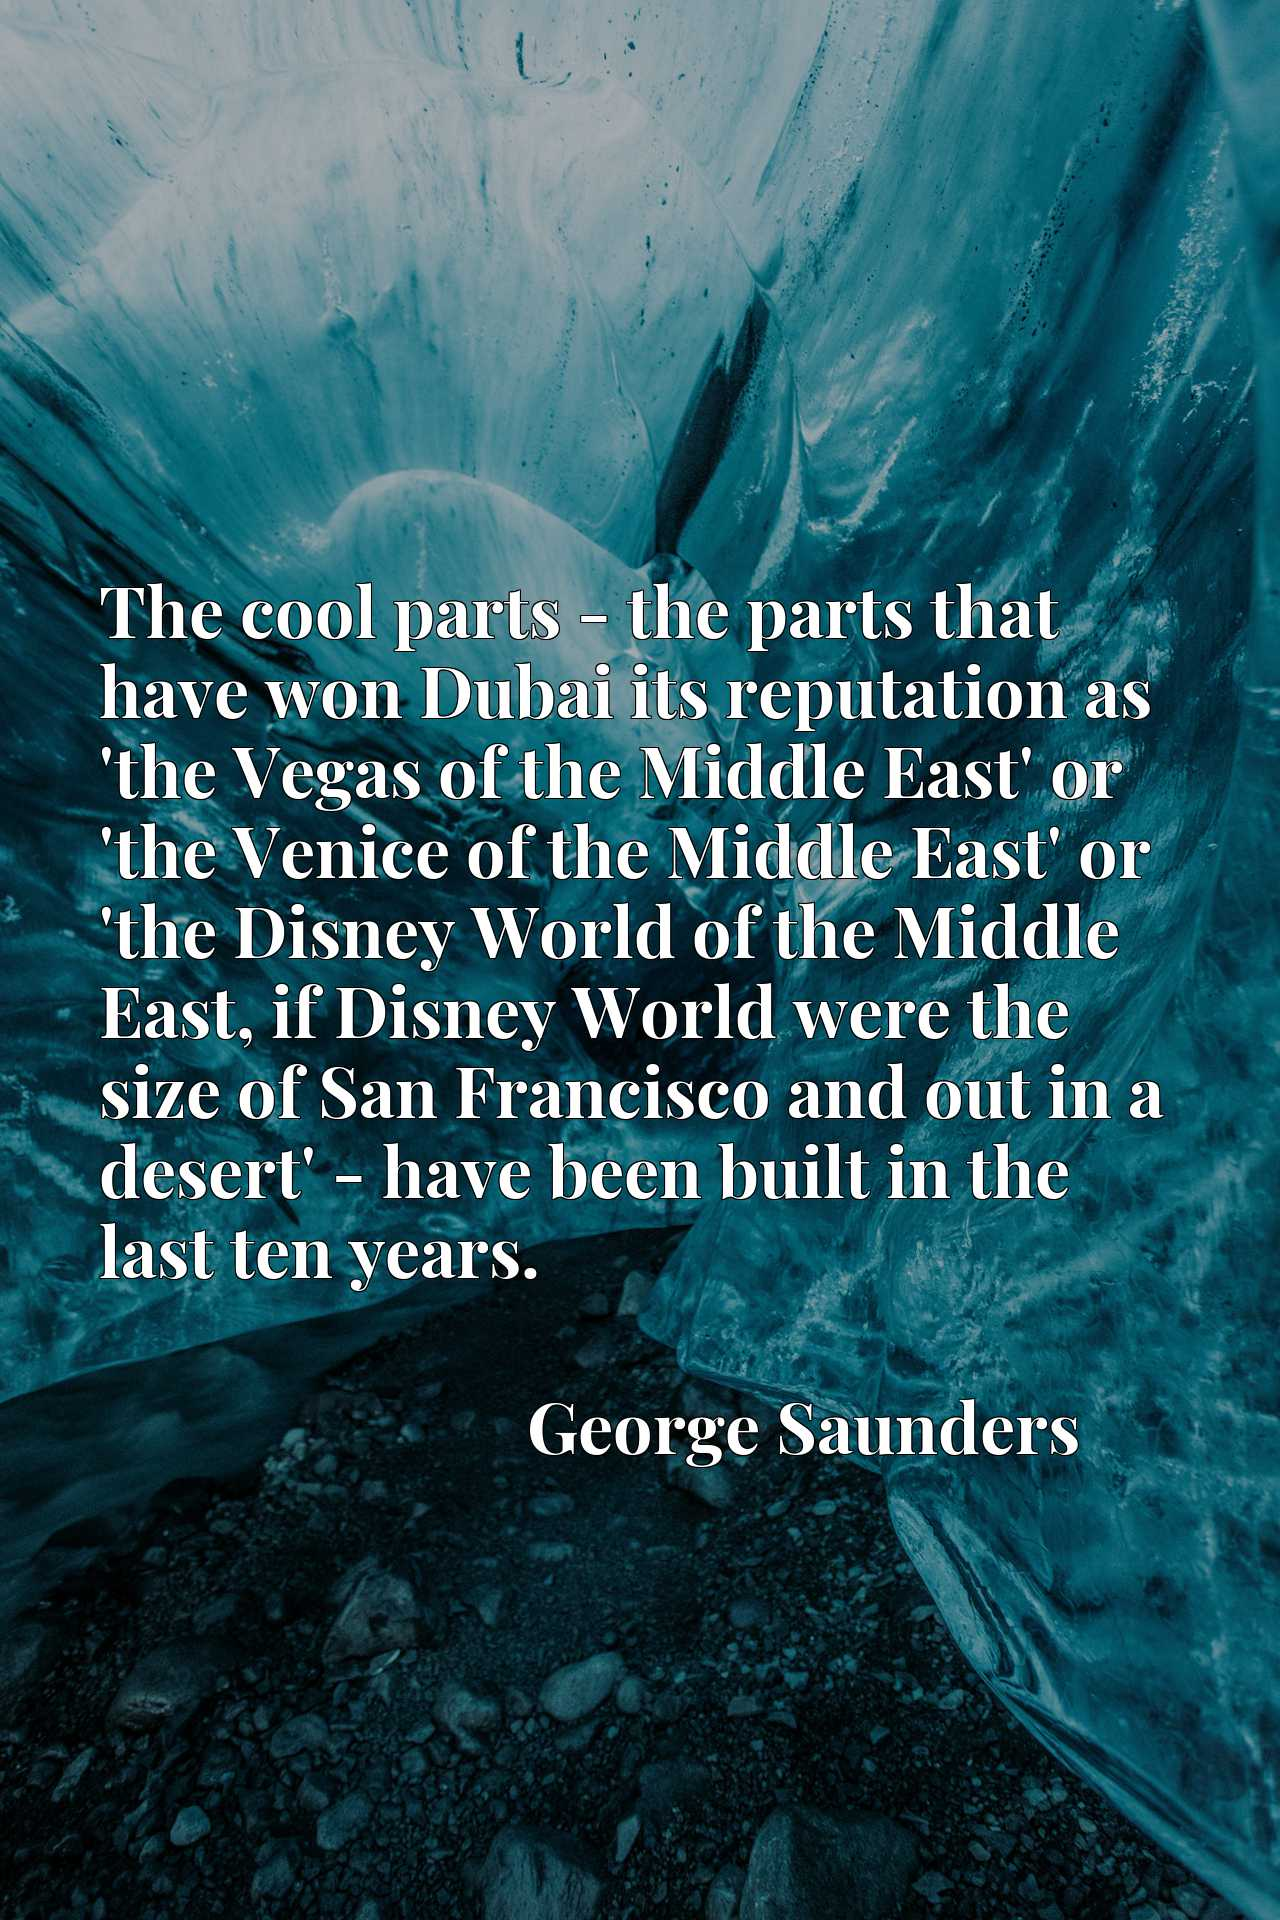 The cool parts - the parts that have won Dubai its reputation as 'the Vegas of the Middle East' or 'the Venice of the Middle East' or 'the Disney World of the Middle East, if Disney World were the size of San Francisco and out in a desert' - have been built in the last ten years.